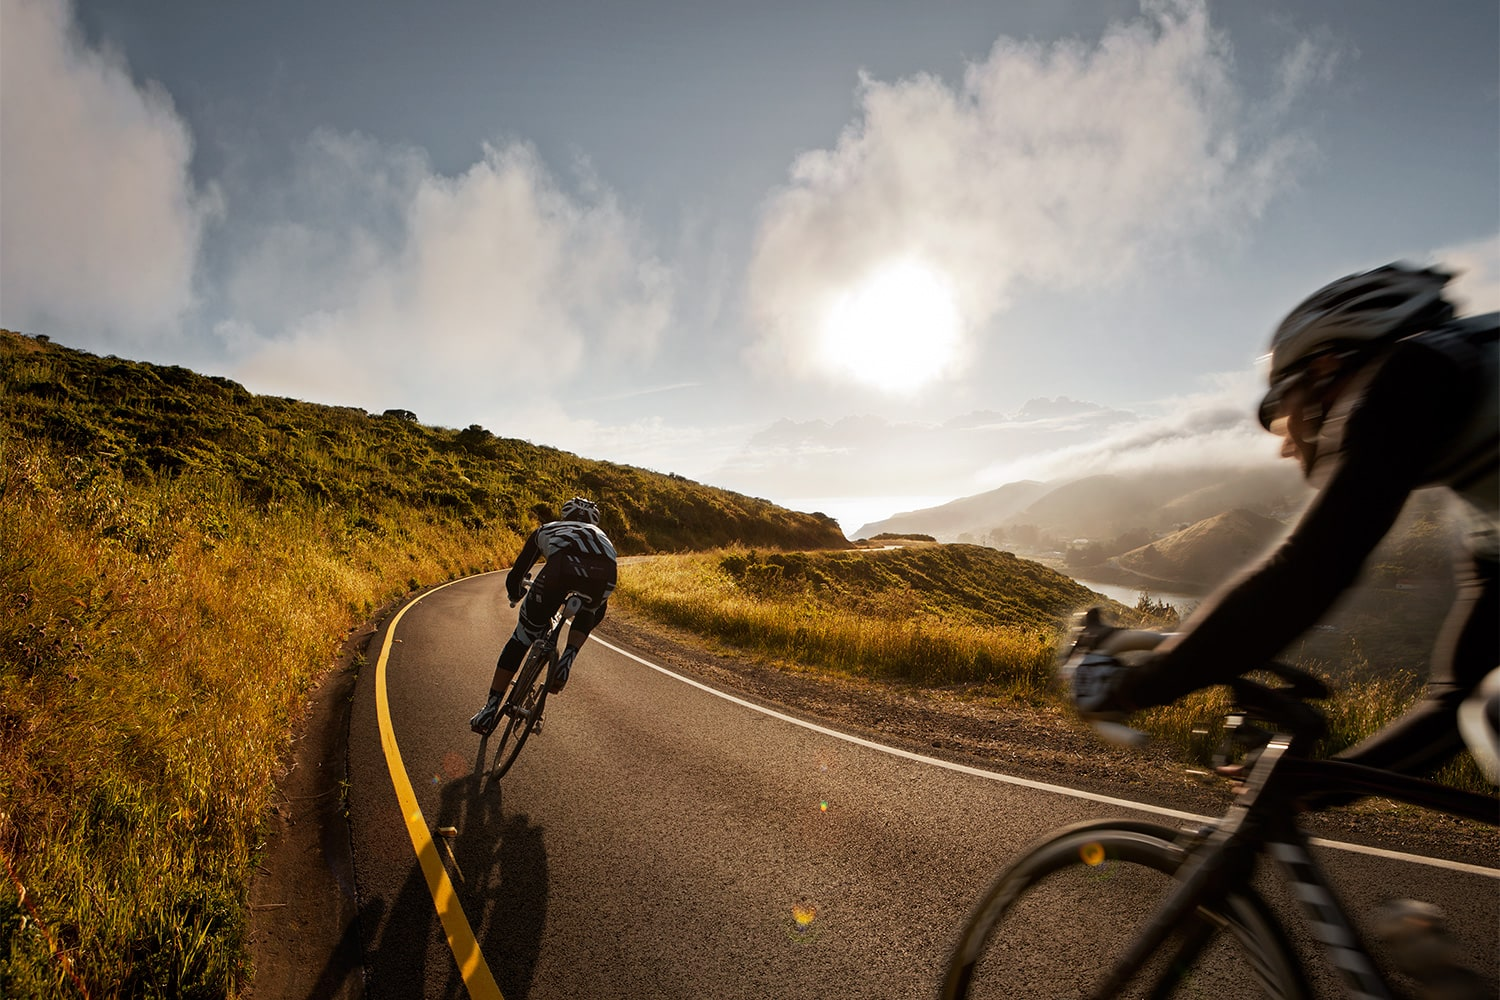 Athletes-two-males-Cycling-on-the-road-Rod-McLean